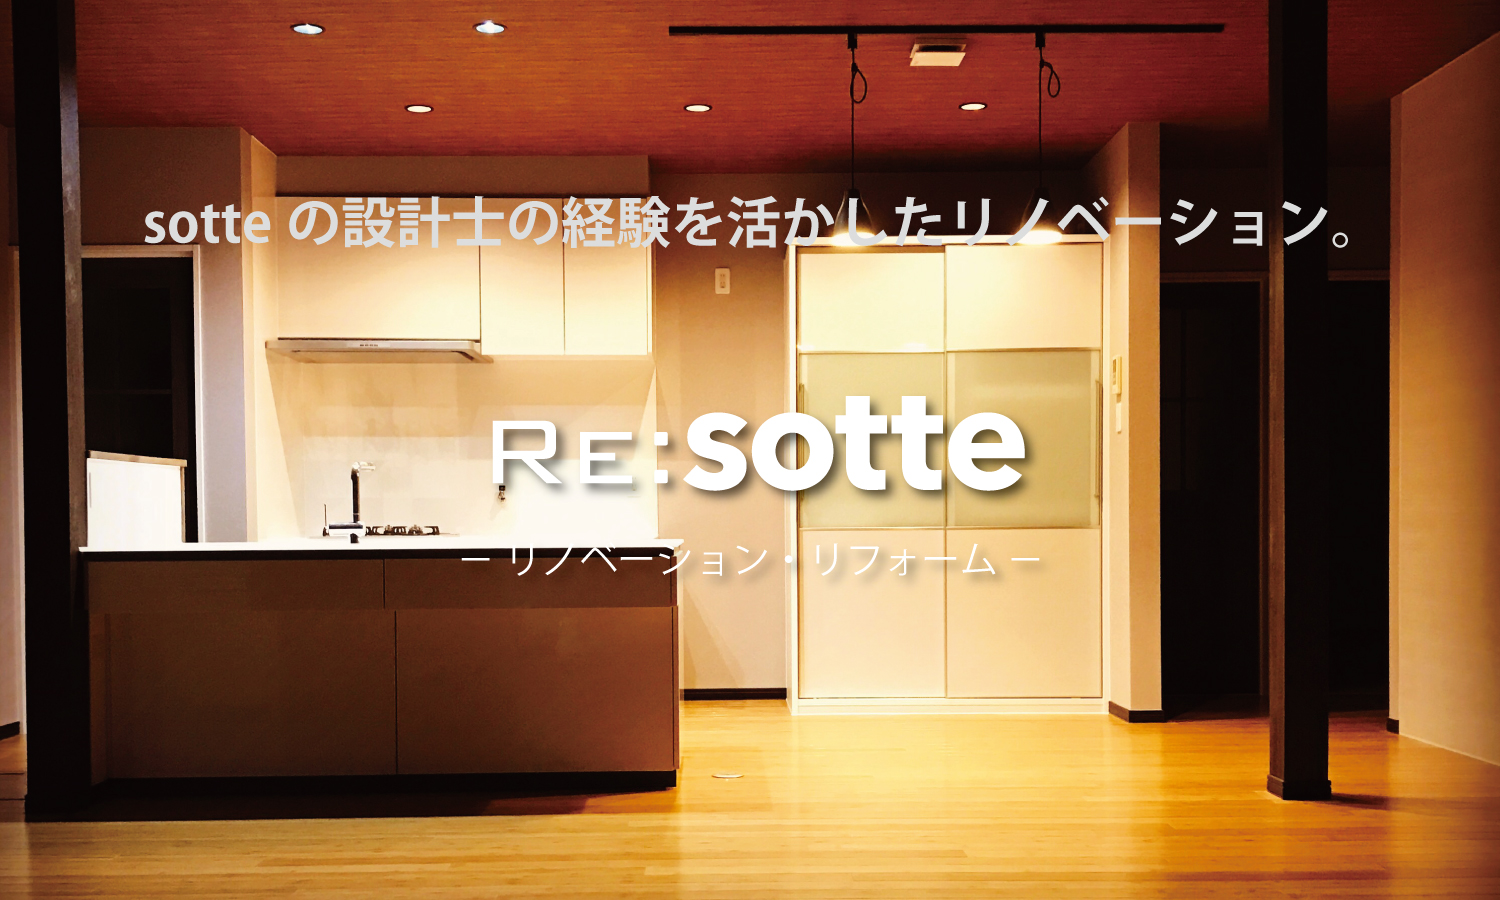 Re:sotte -リソッテ-